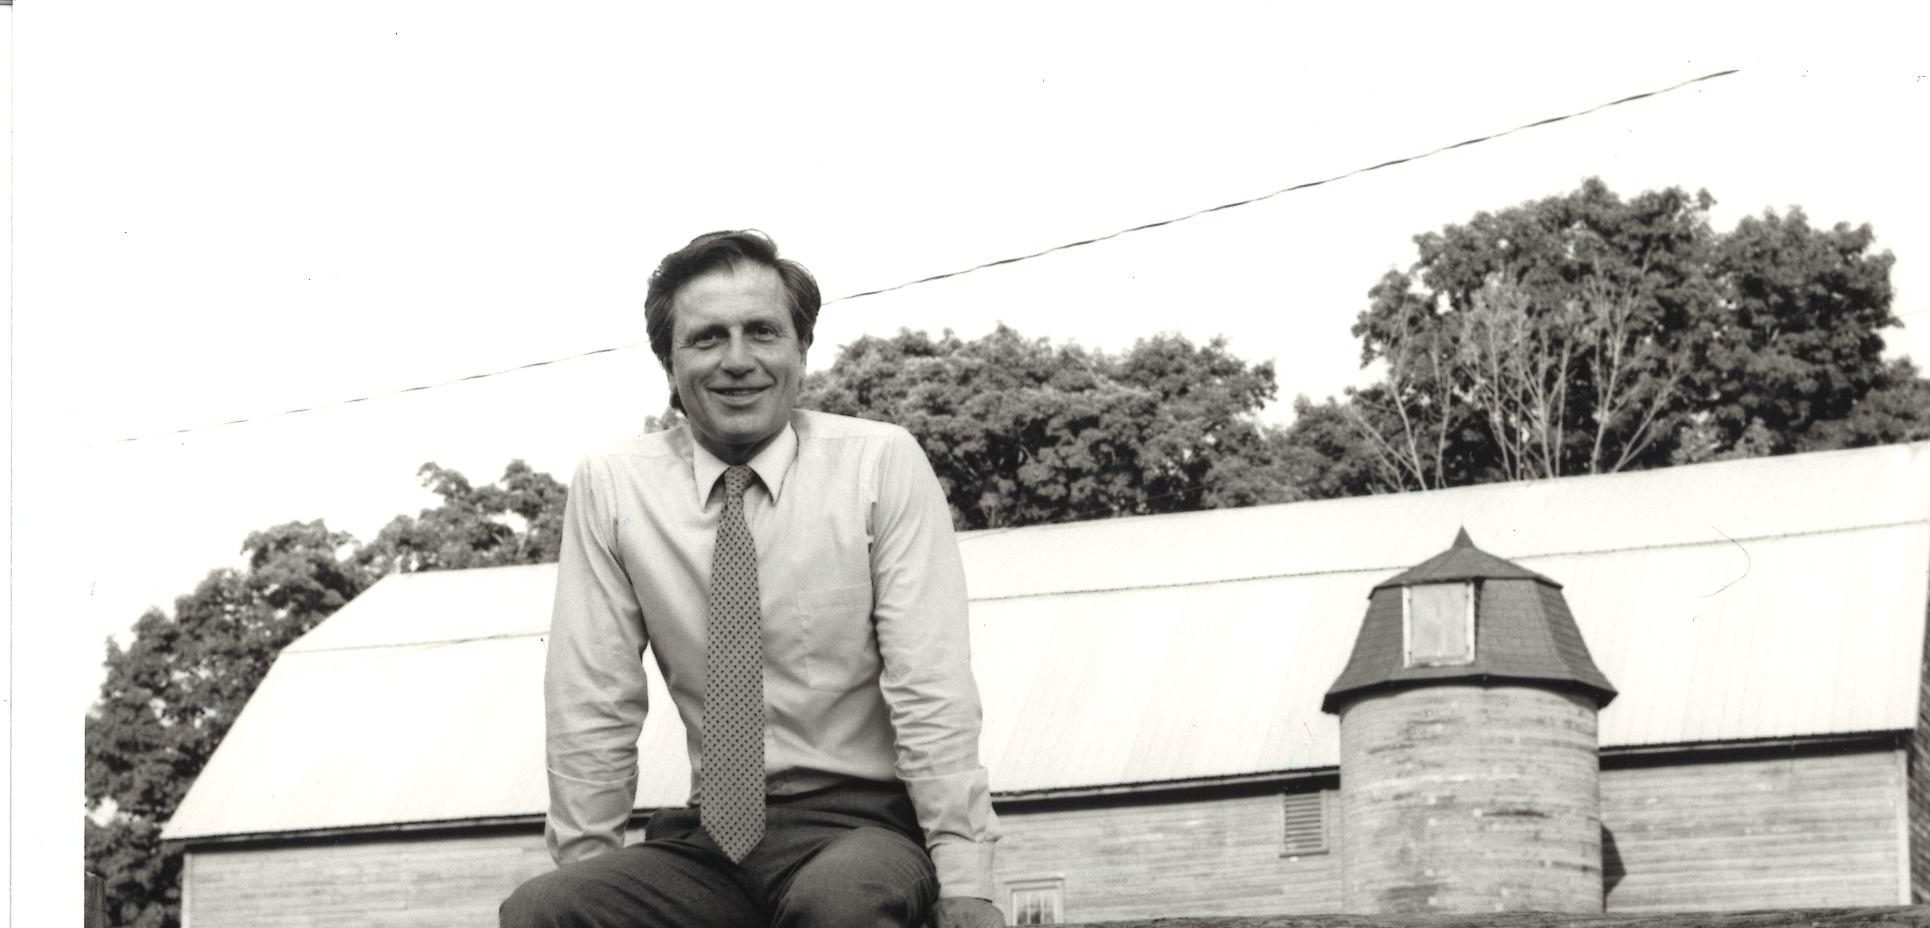 Black and white photograph; Paul Kellog sits on a wooden picket fence, wearing button-down shirt and tie. A barn silo appears behind him.